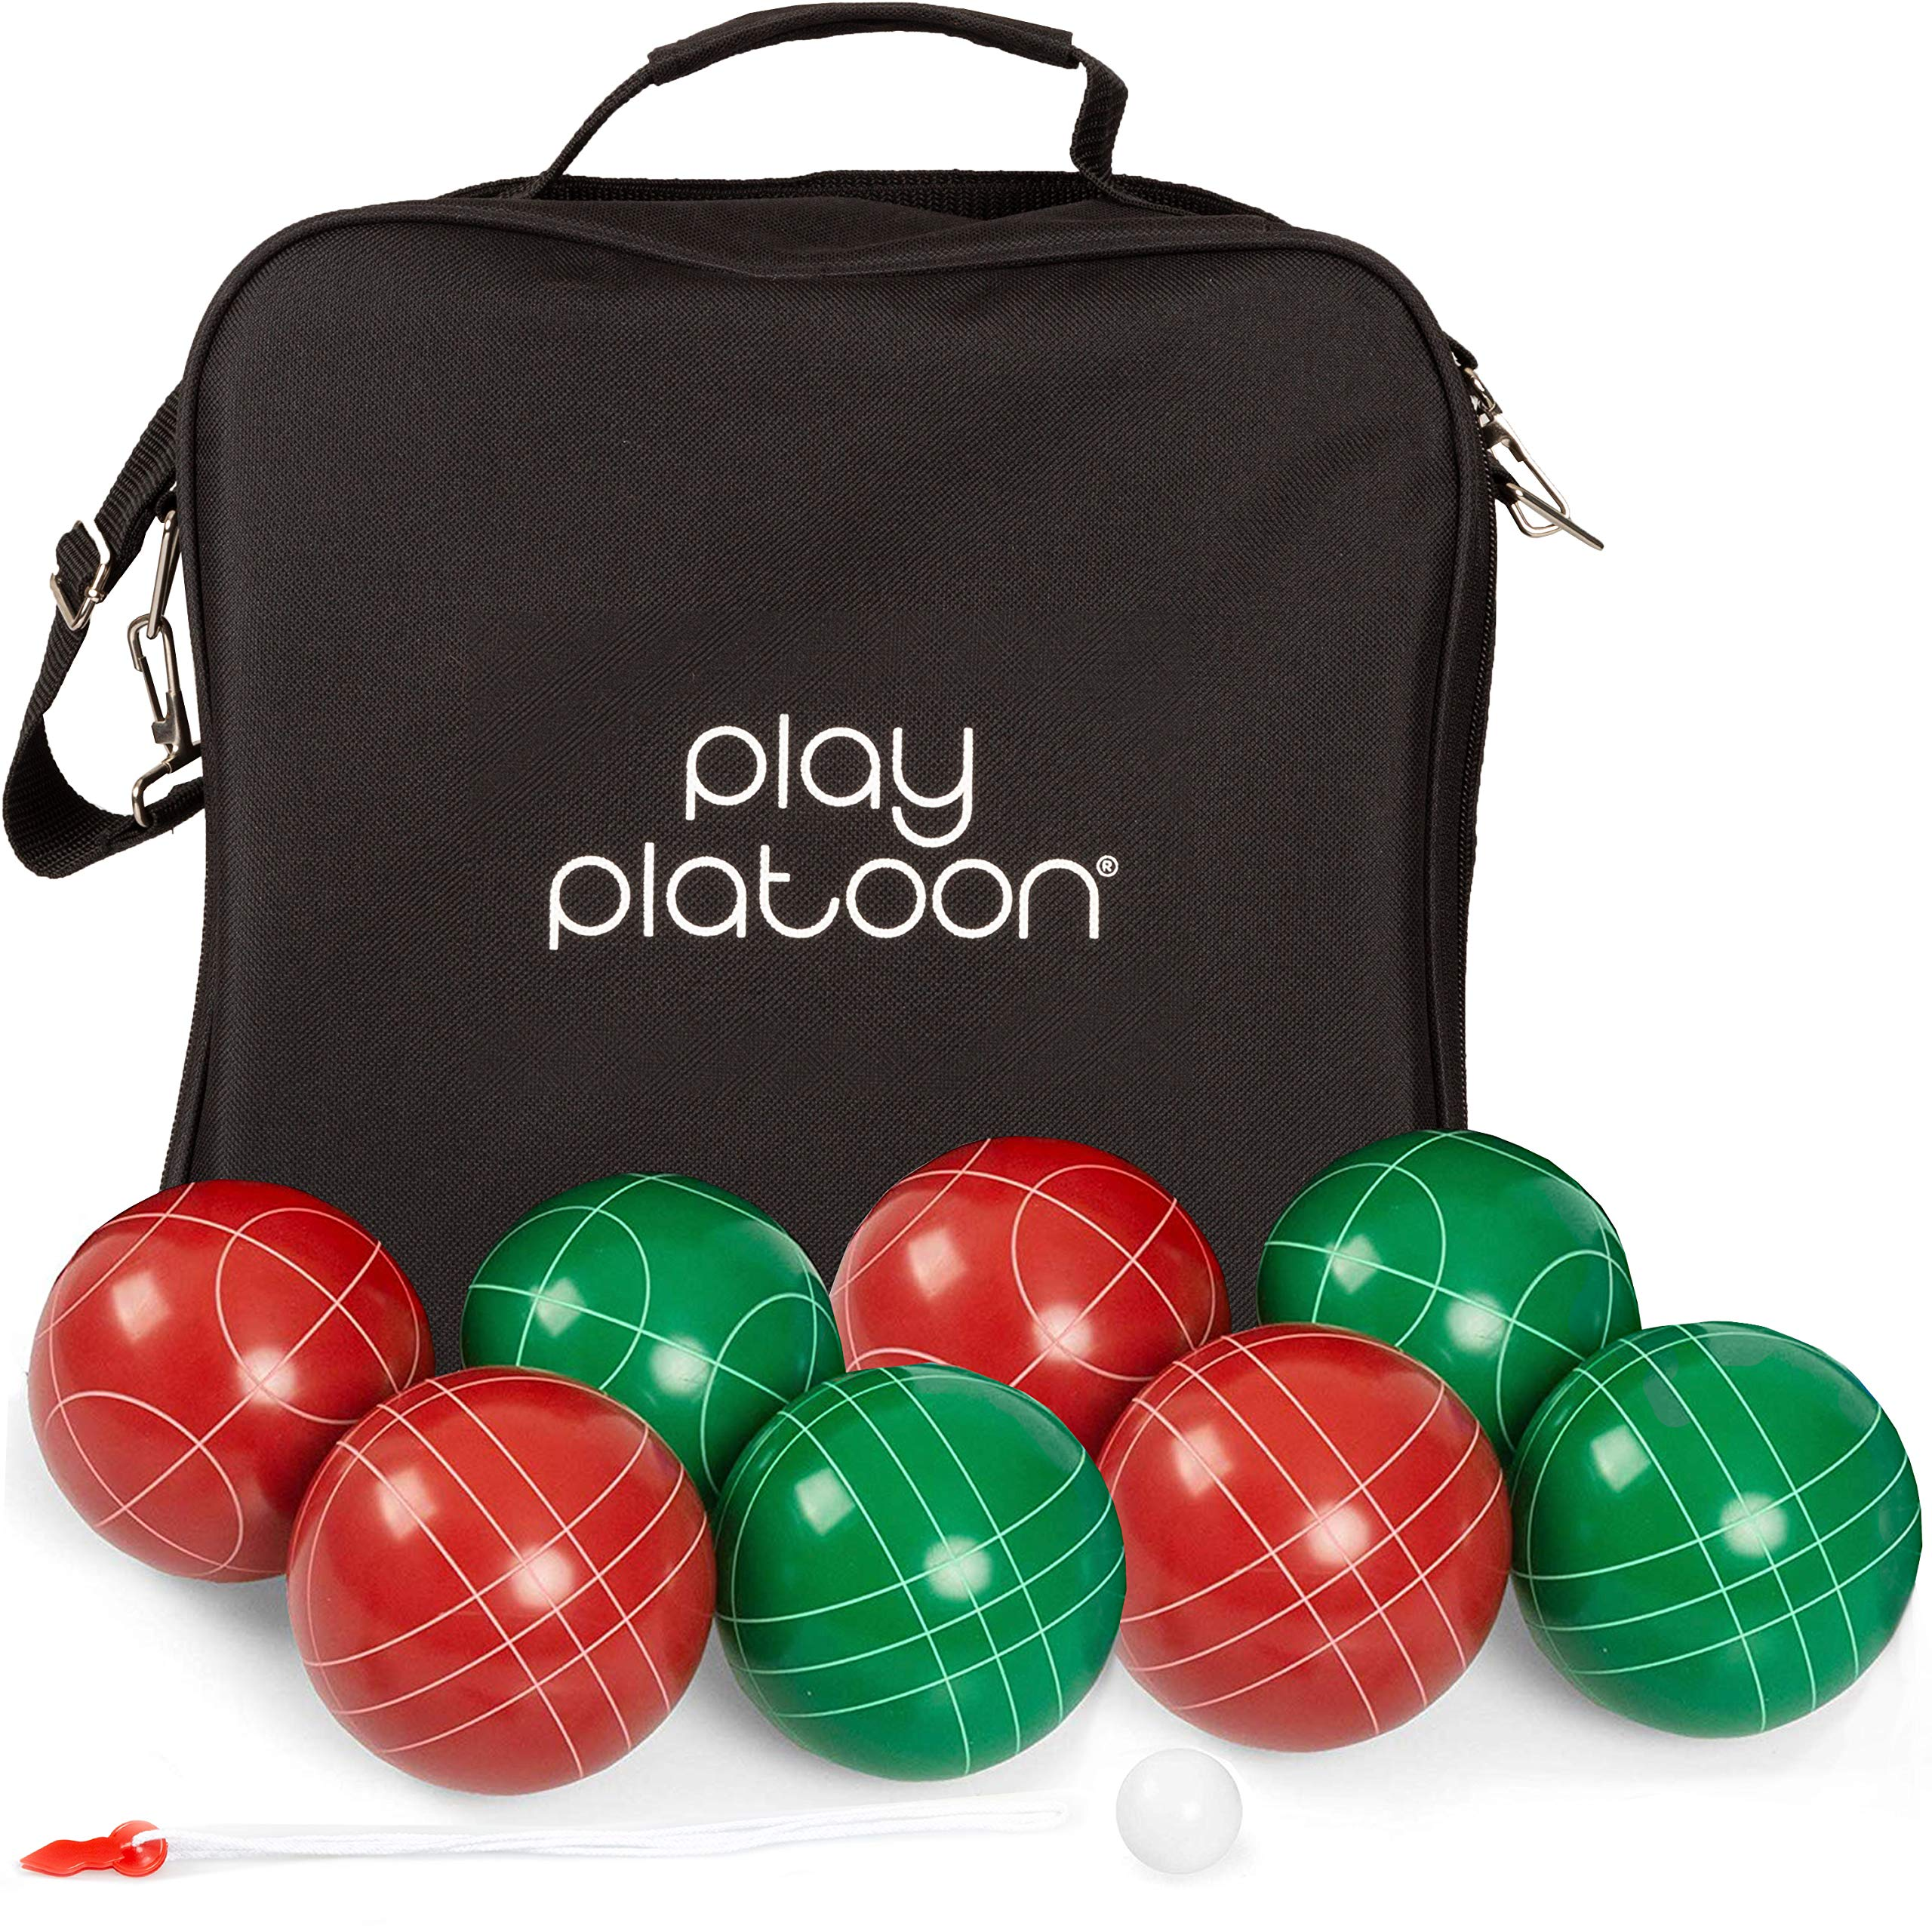 Bocce Ball Set Regulation Size with 8 Premium Resin Bocce Balls, Pallino, Carry Bag & Measuring Rope by Play Platoon